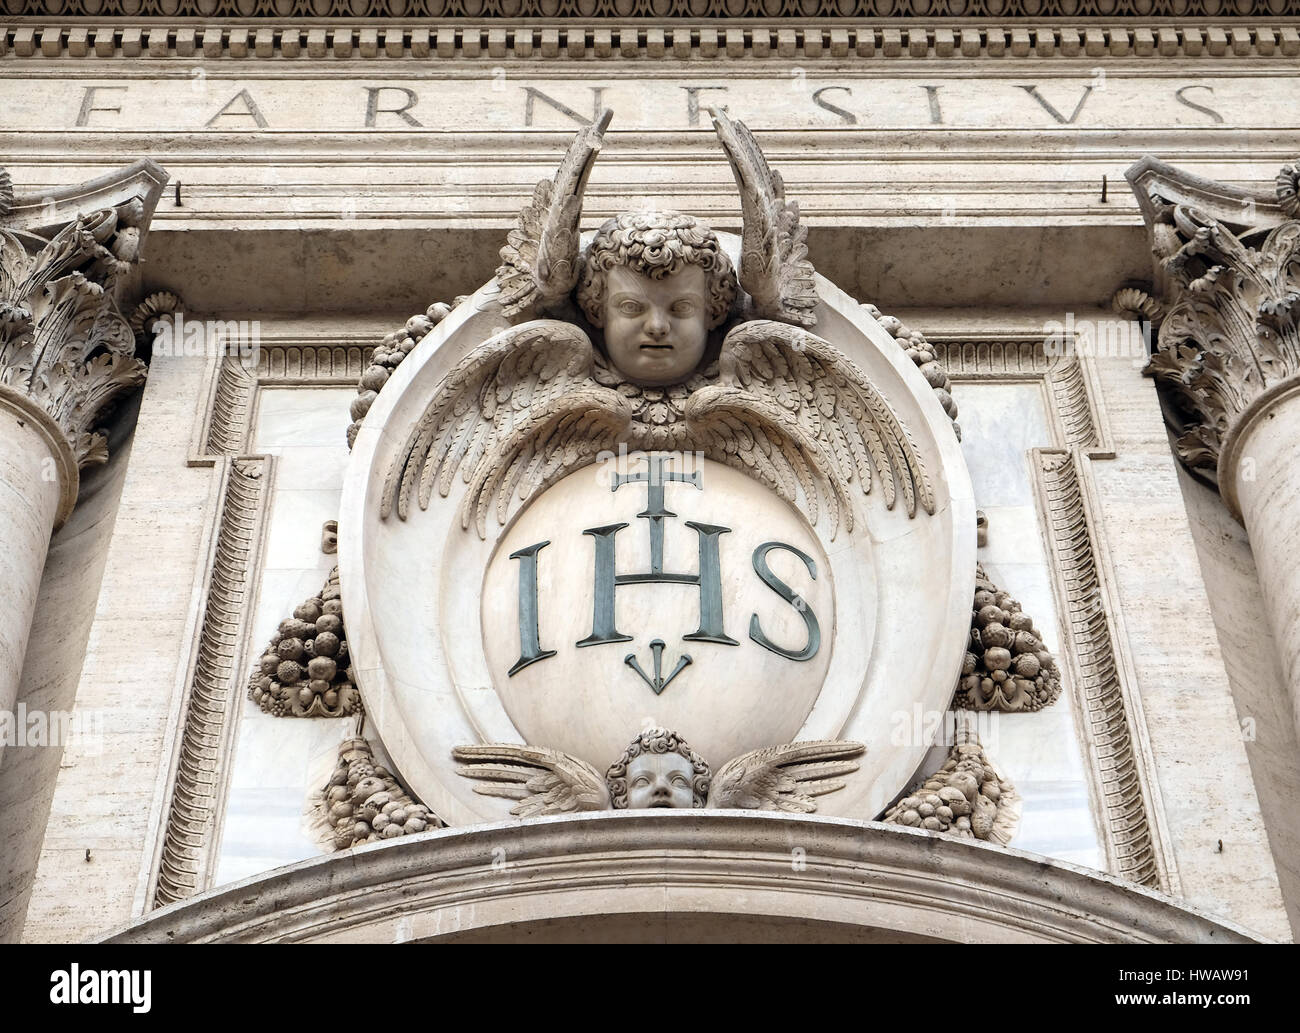 Christogram IHS, facade of the Church of the Gesu, mother church of the Society of Jesus, Rome, ItalyStock Photo